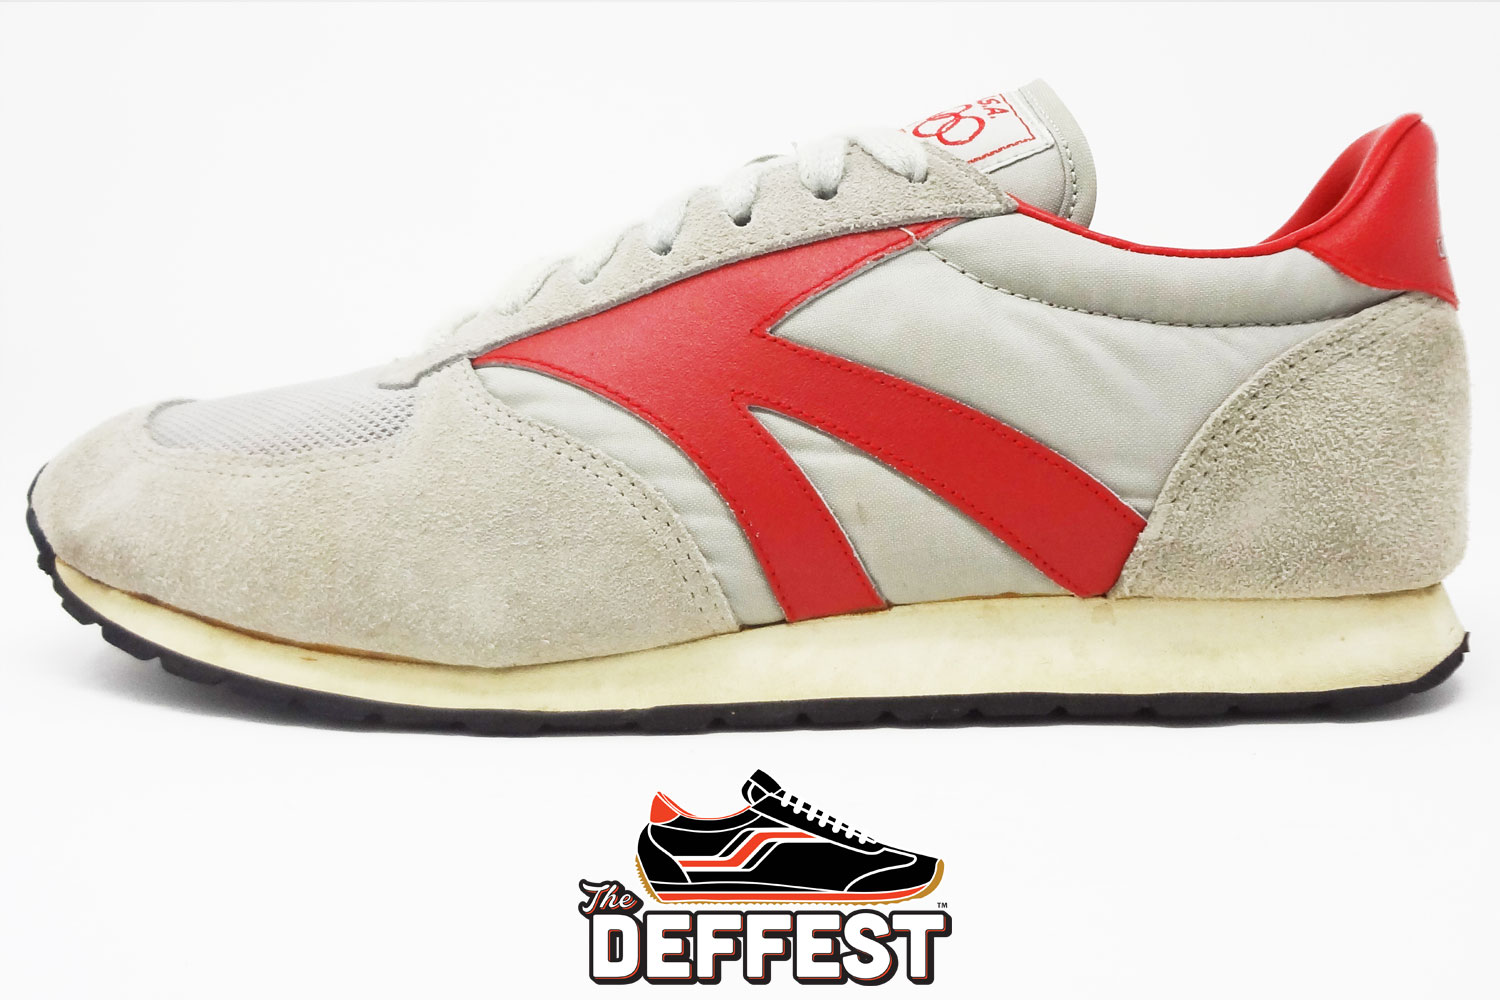 JCPenney USA Olympics 1981 vintage sneakers